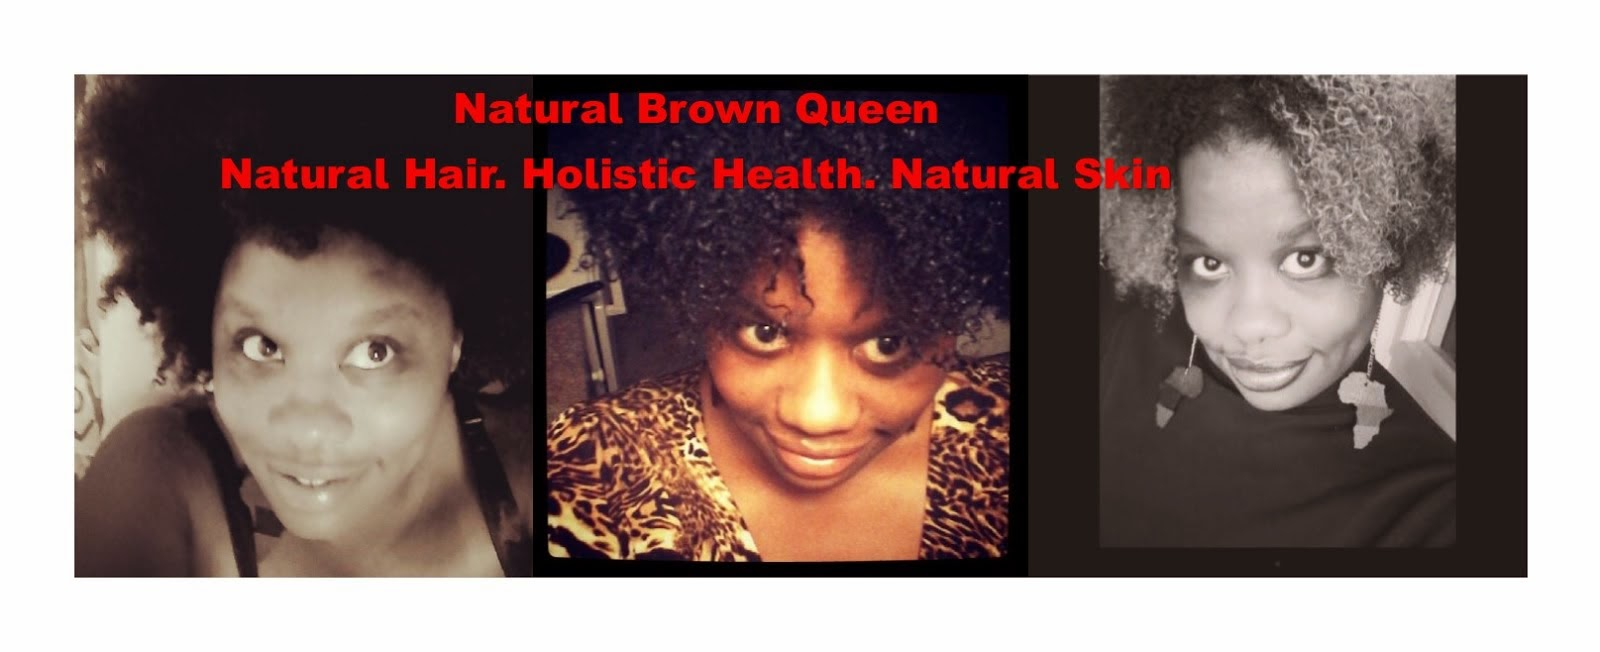 NATURAL BROWN QUEEN